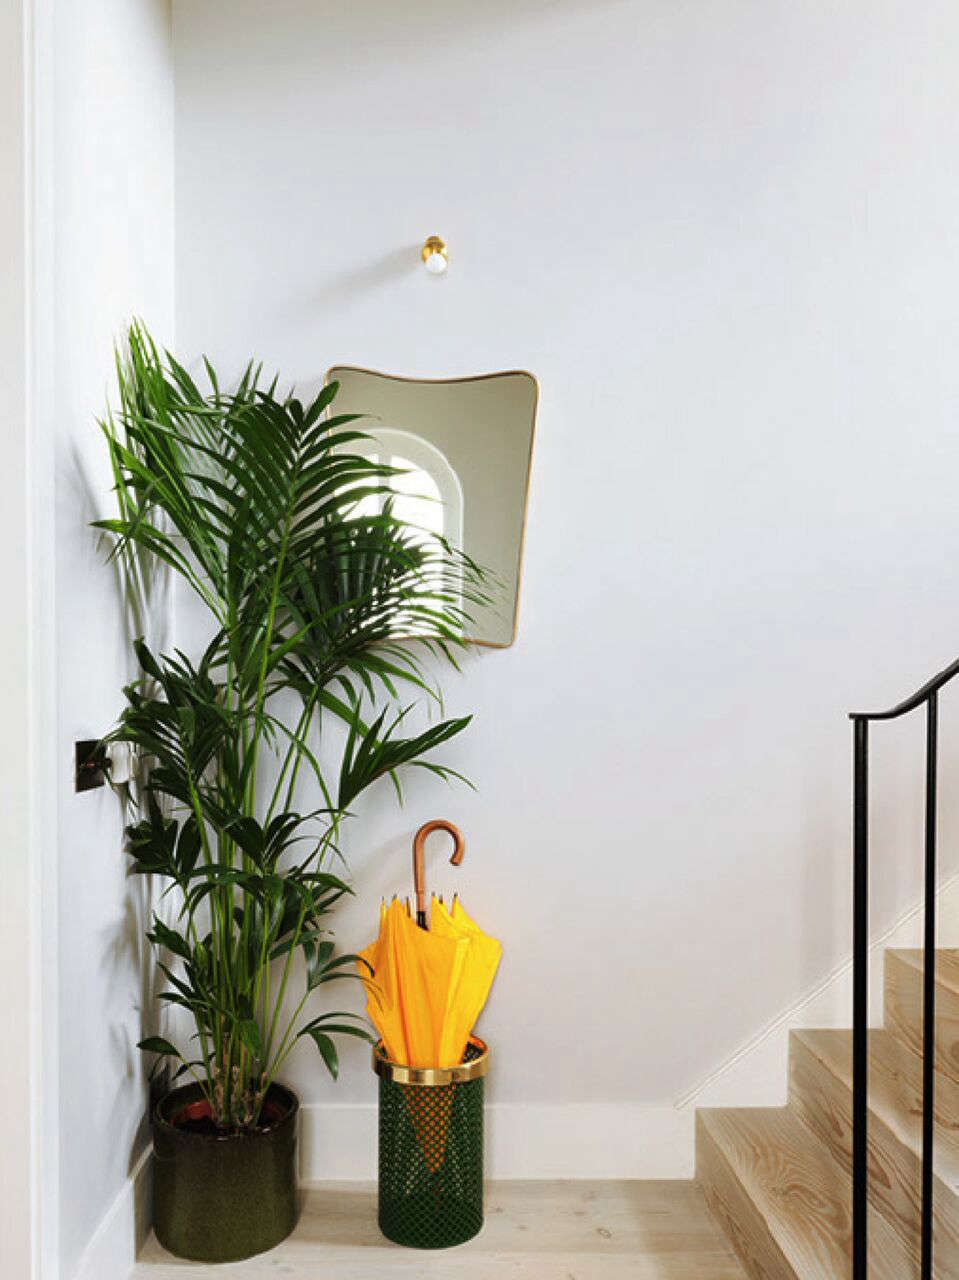 A Notting Hill Townhouse Tailored for Living by Charles Mellersh Charles Mellerersh Notting Hill town house interior design   Remodelista